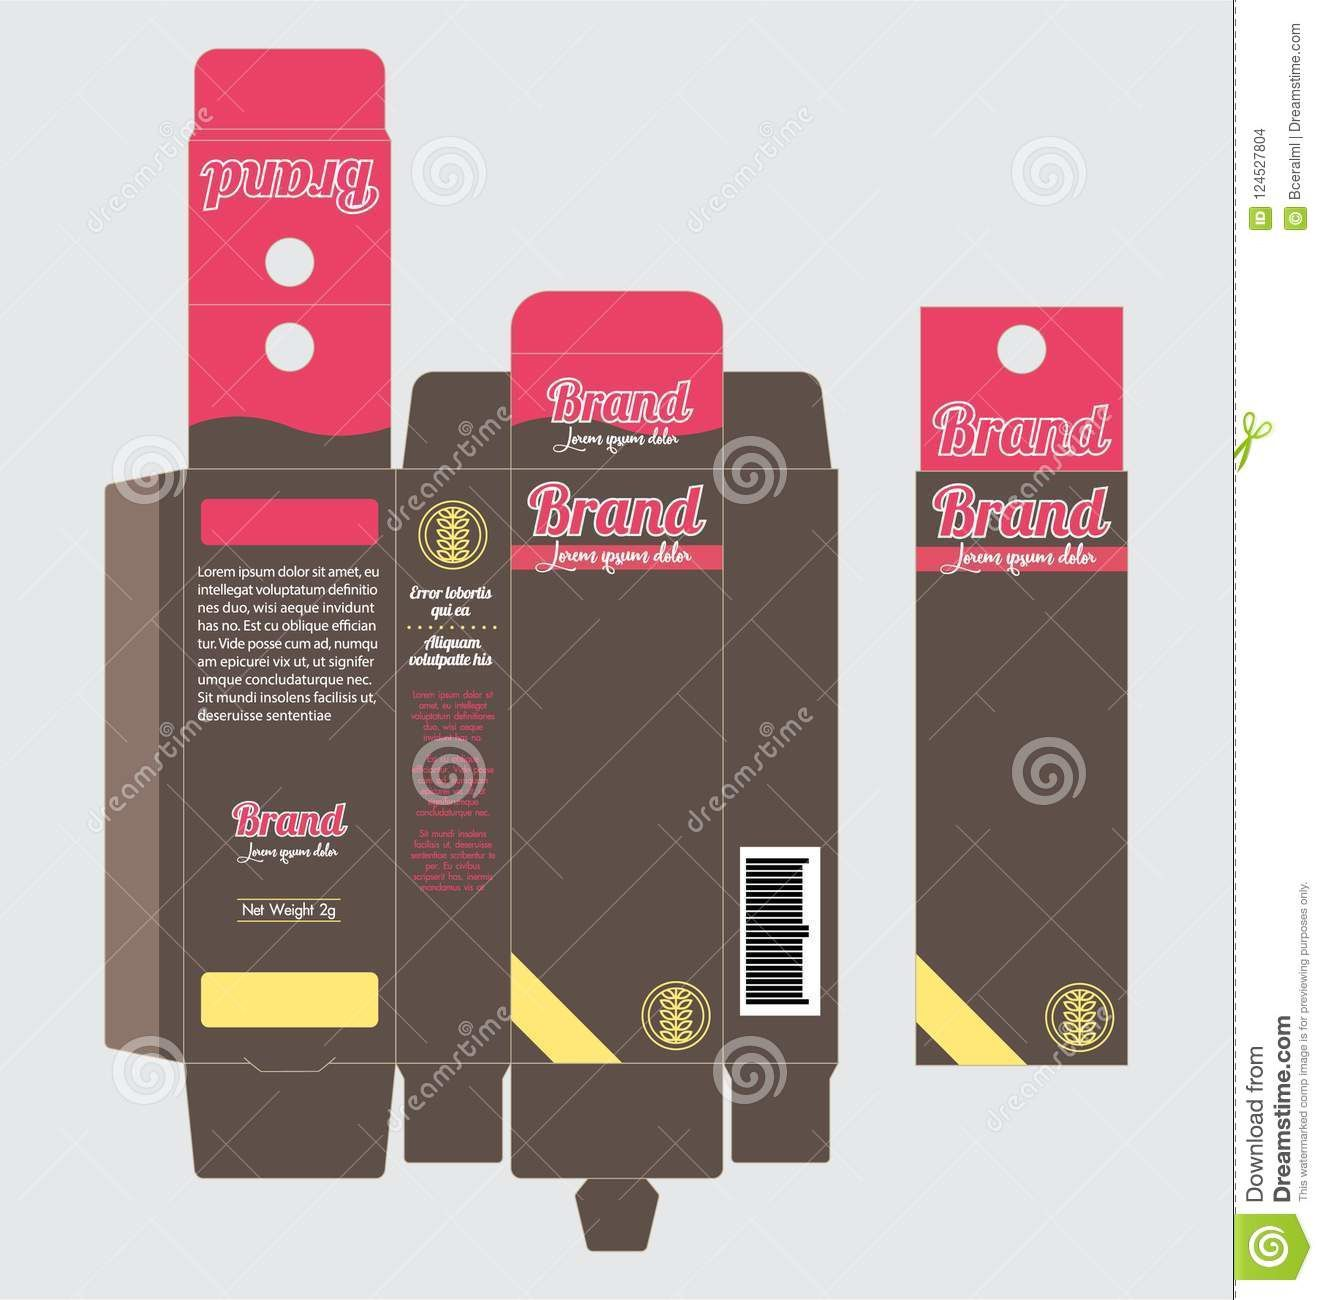 006 Surprising Product Packaging Design Template  Templates Free Download SampleFull